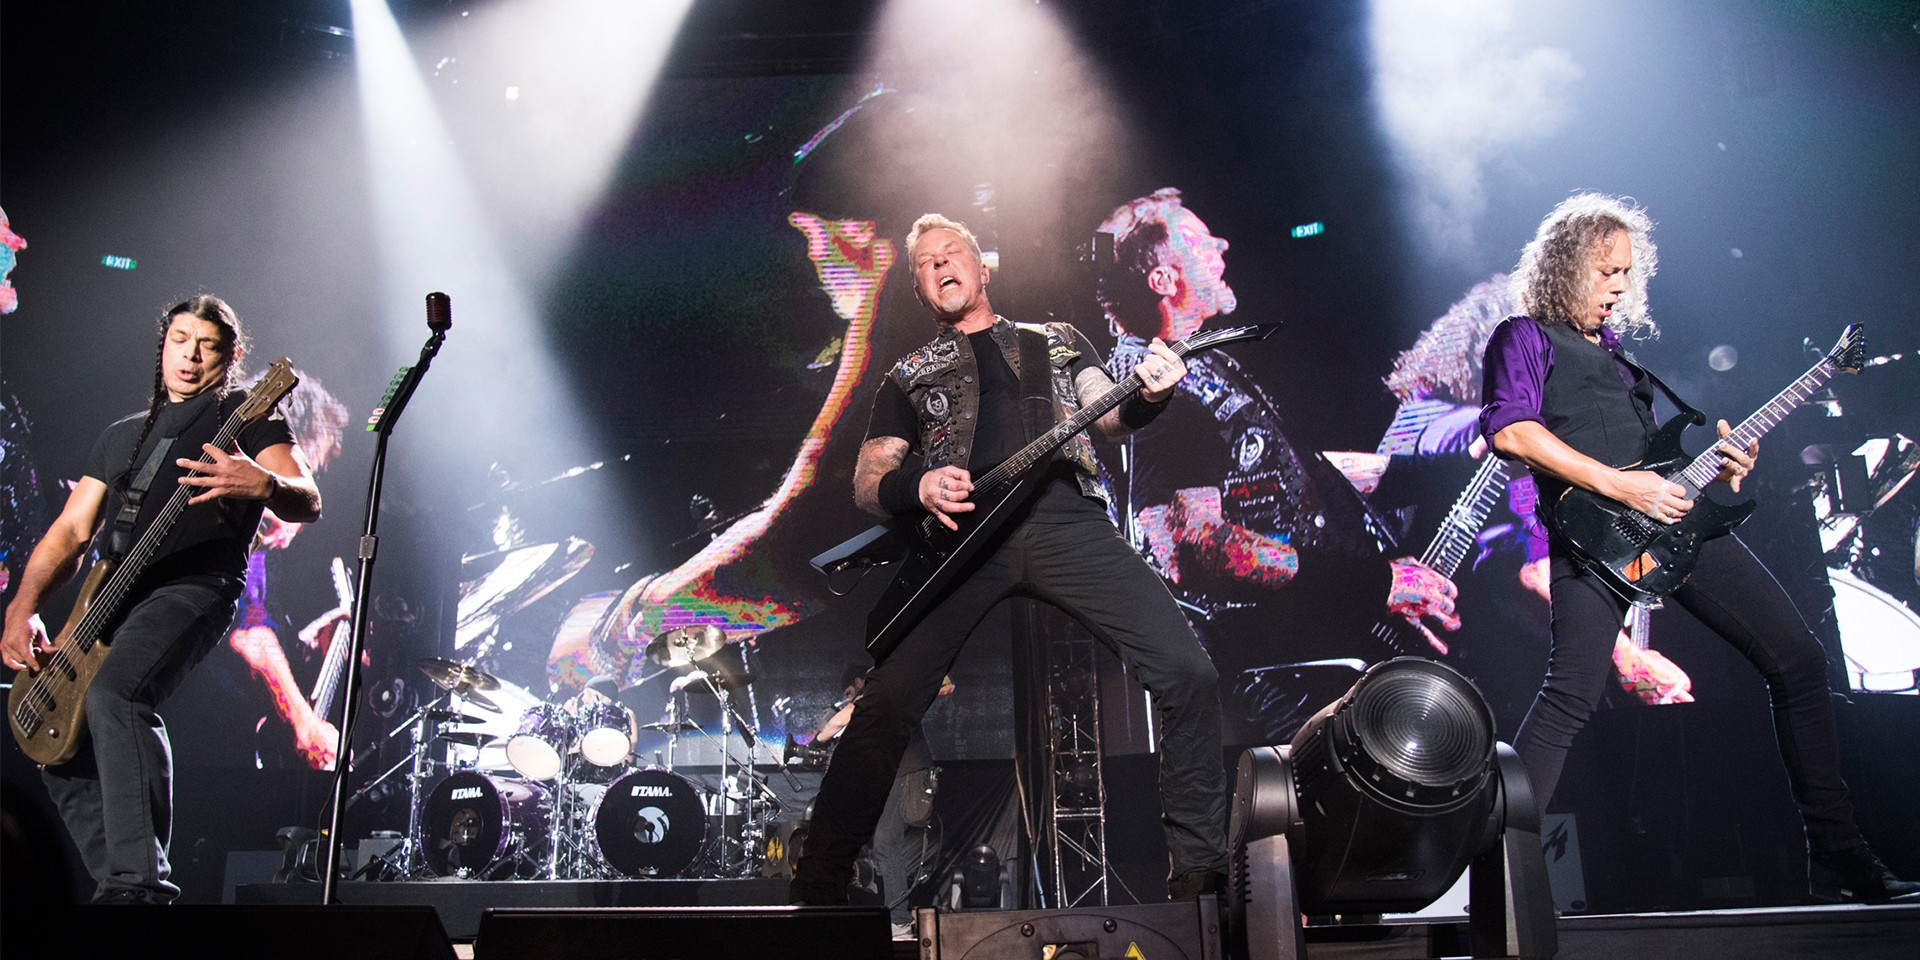 GIG REPORT: Metallica perform to 10,000 fans, return to Singapore Indoor Stadium after 24 years